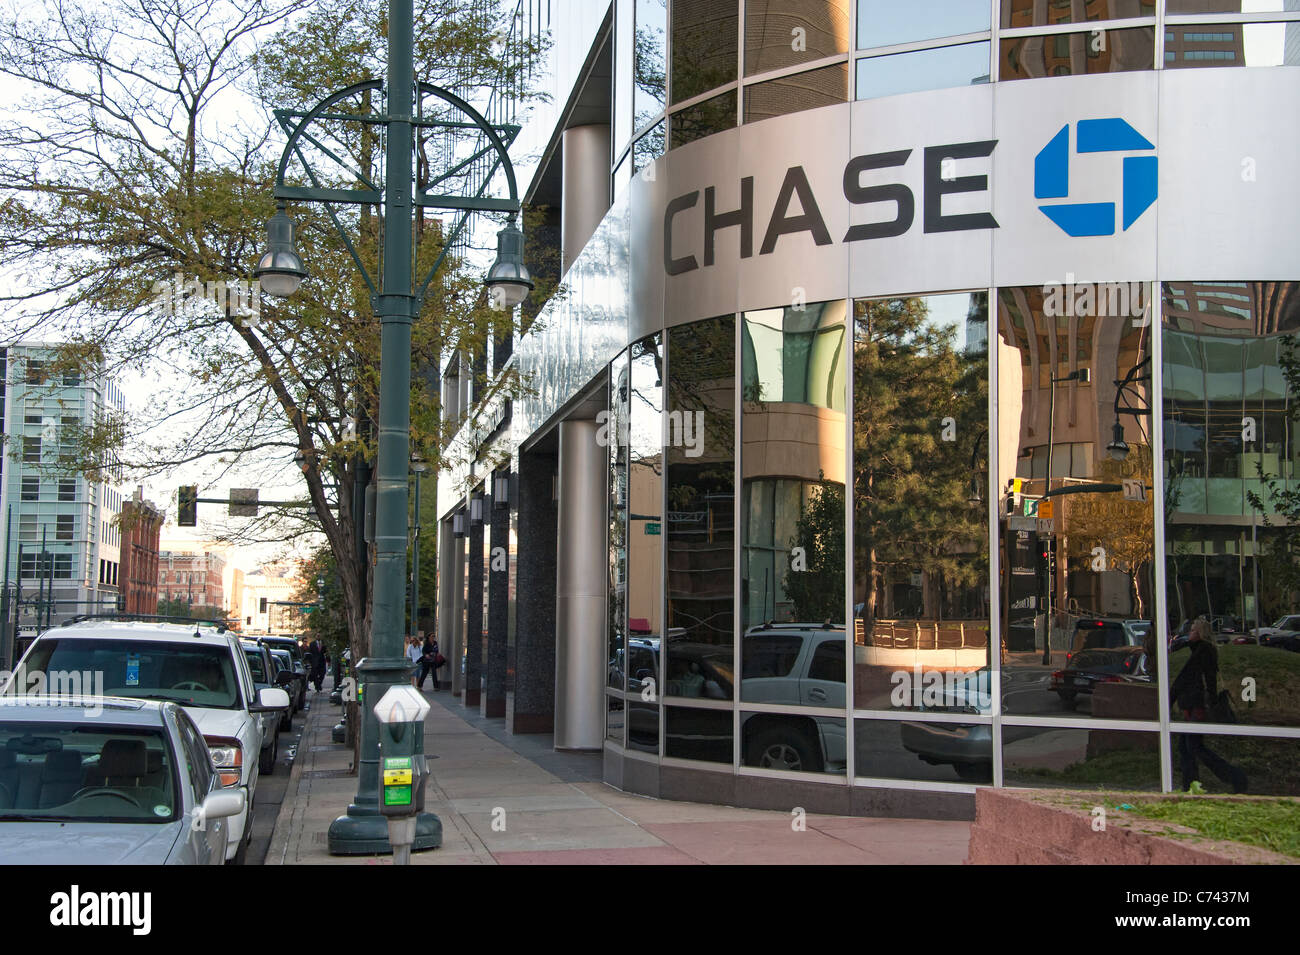 Chase Bank Building Downtown Denver Colorado